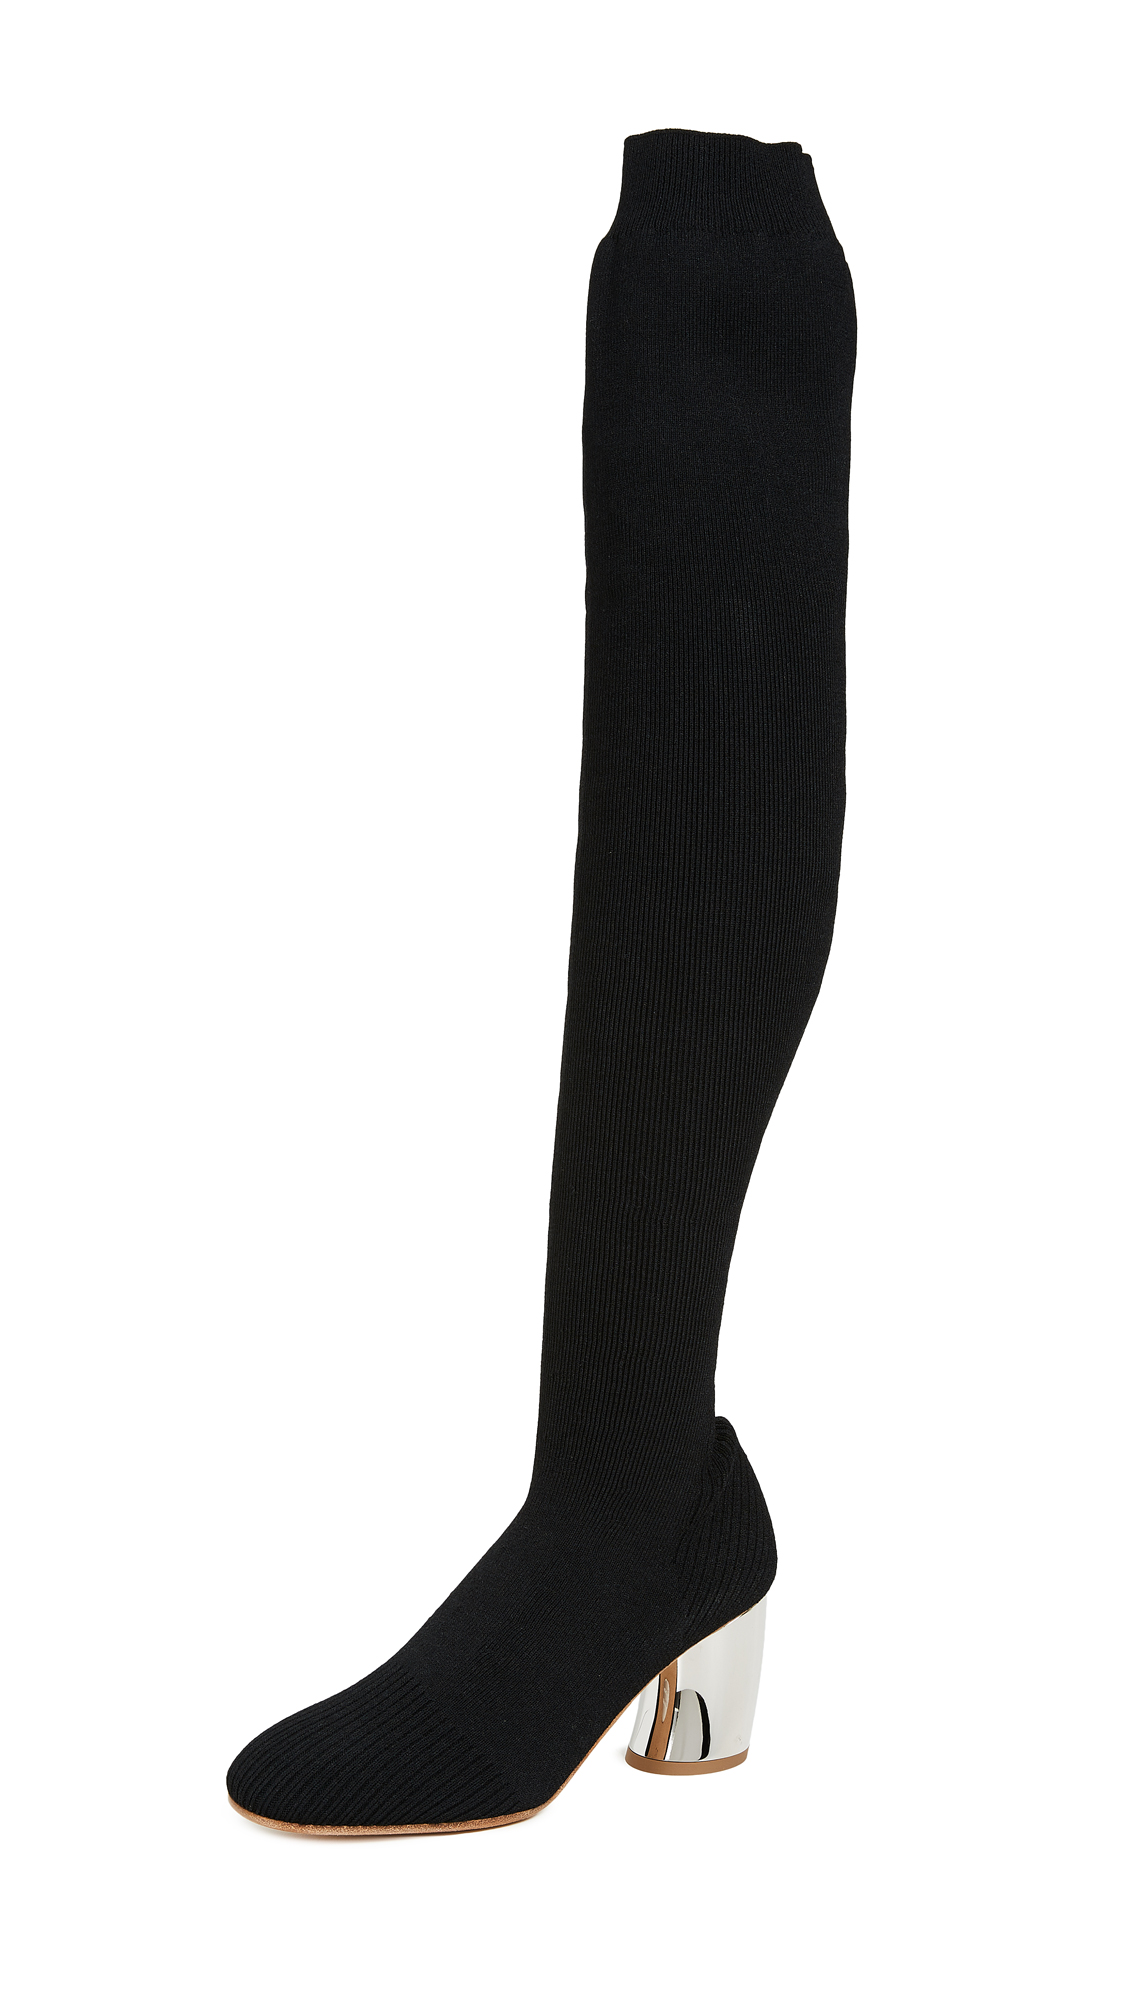 Proenza Schouler Knit Thigh High Boots